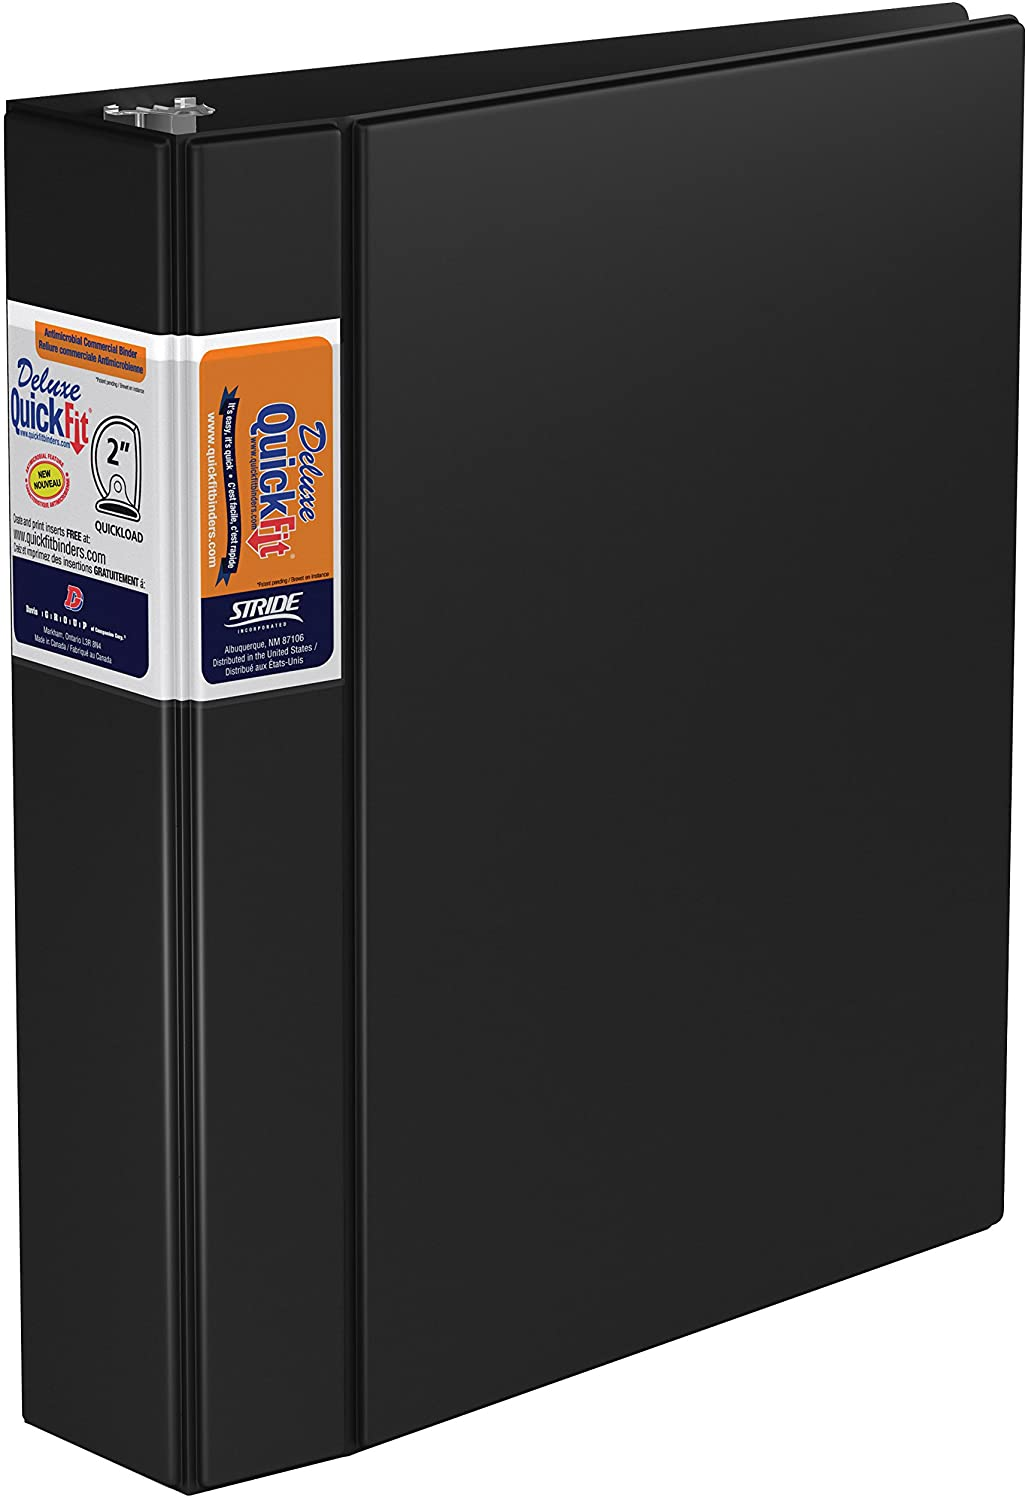 QuickFit Heavy Duty Commercial Binder, 2 Inch, D Ring, Black (29031)